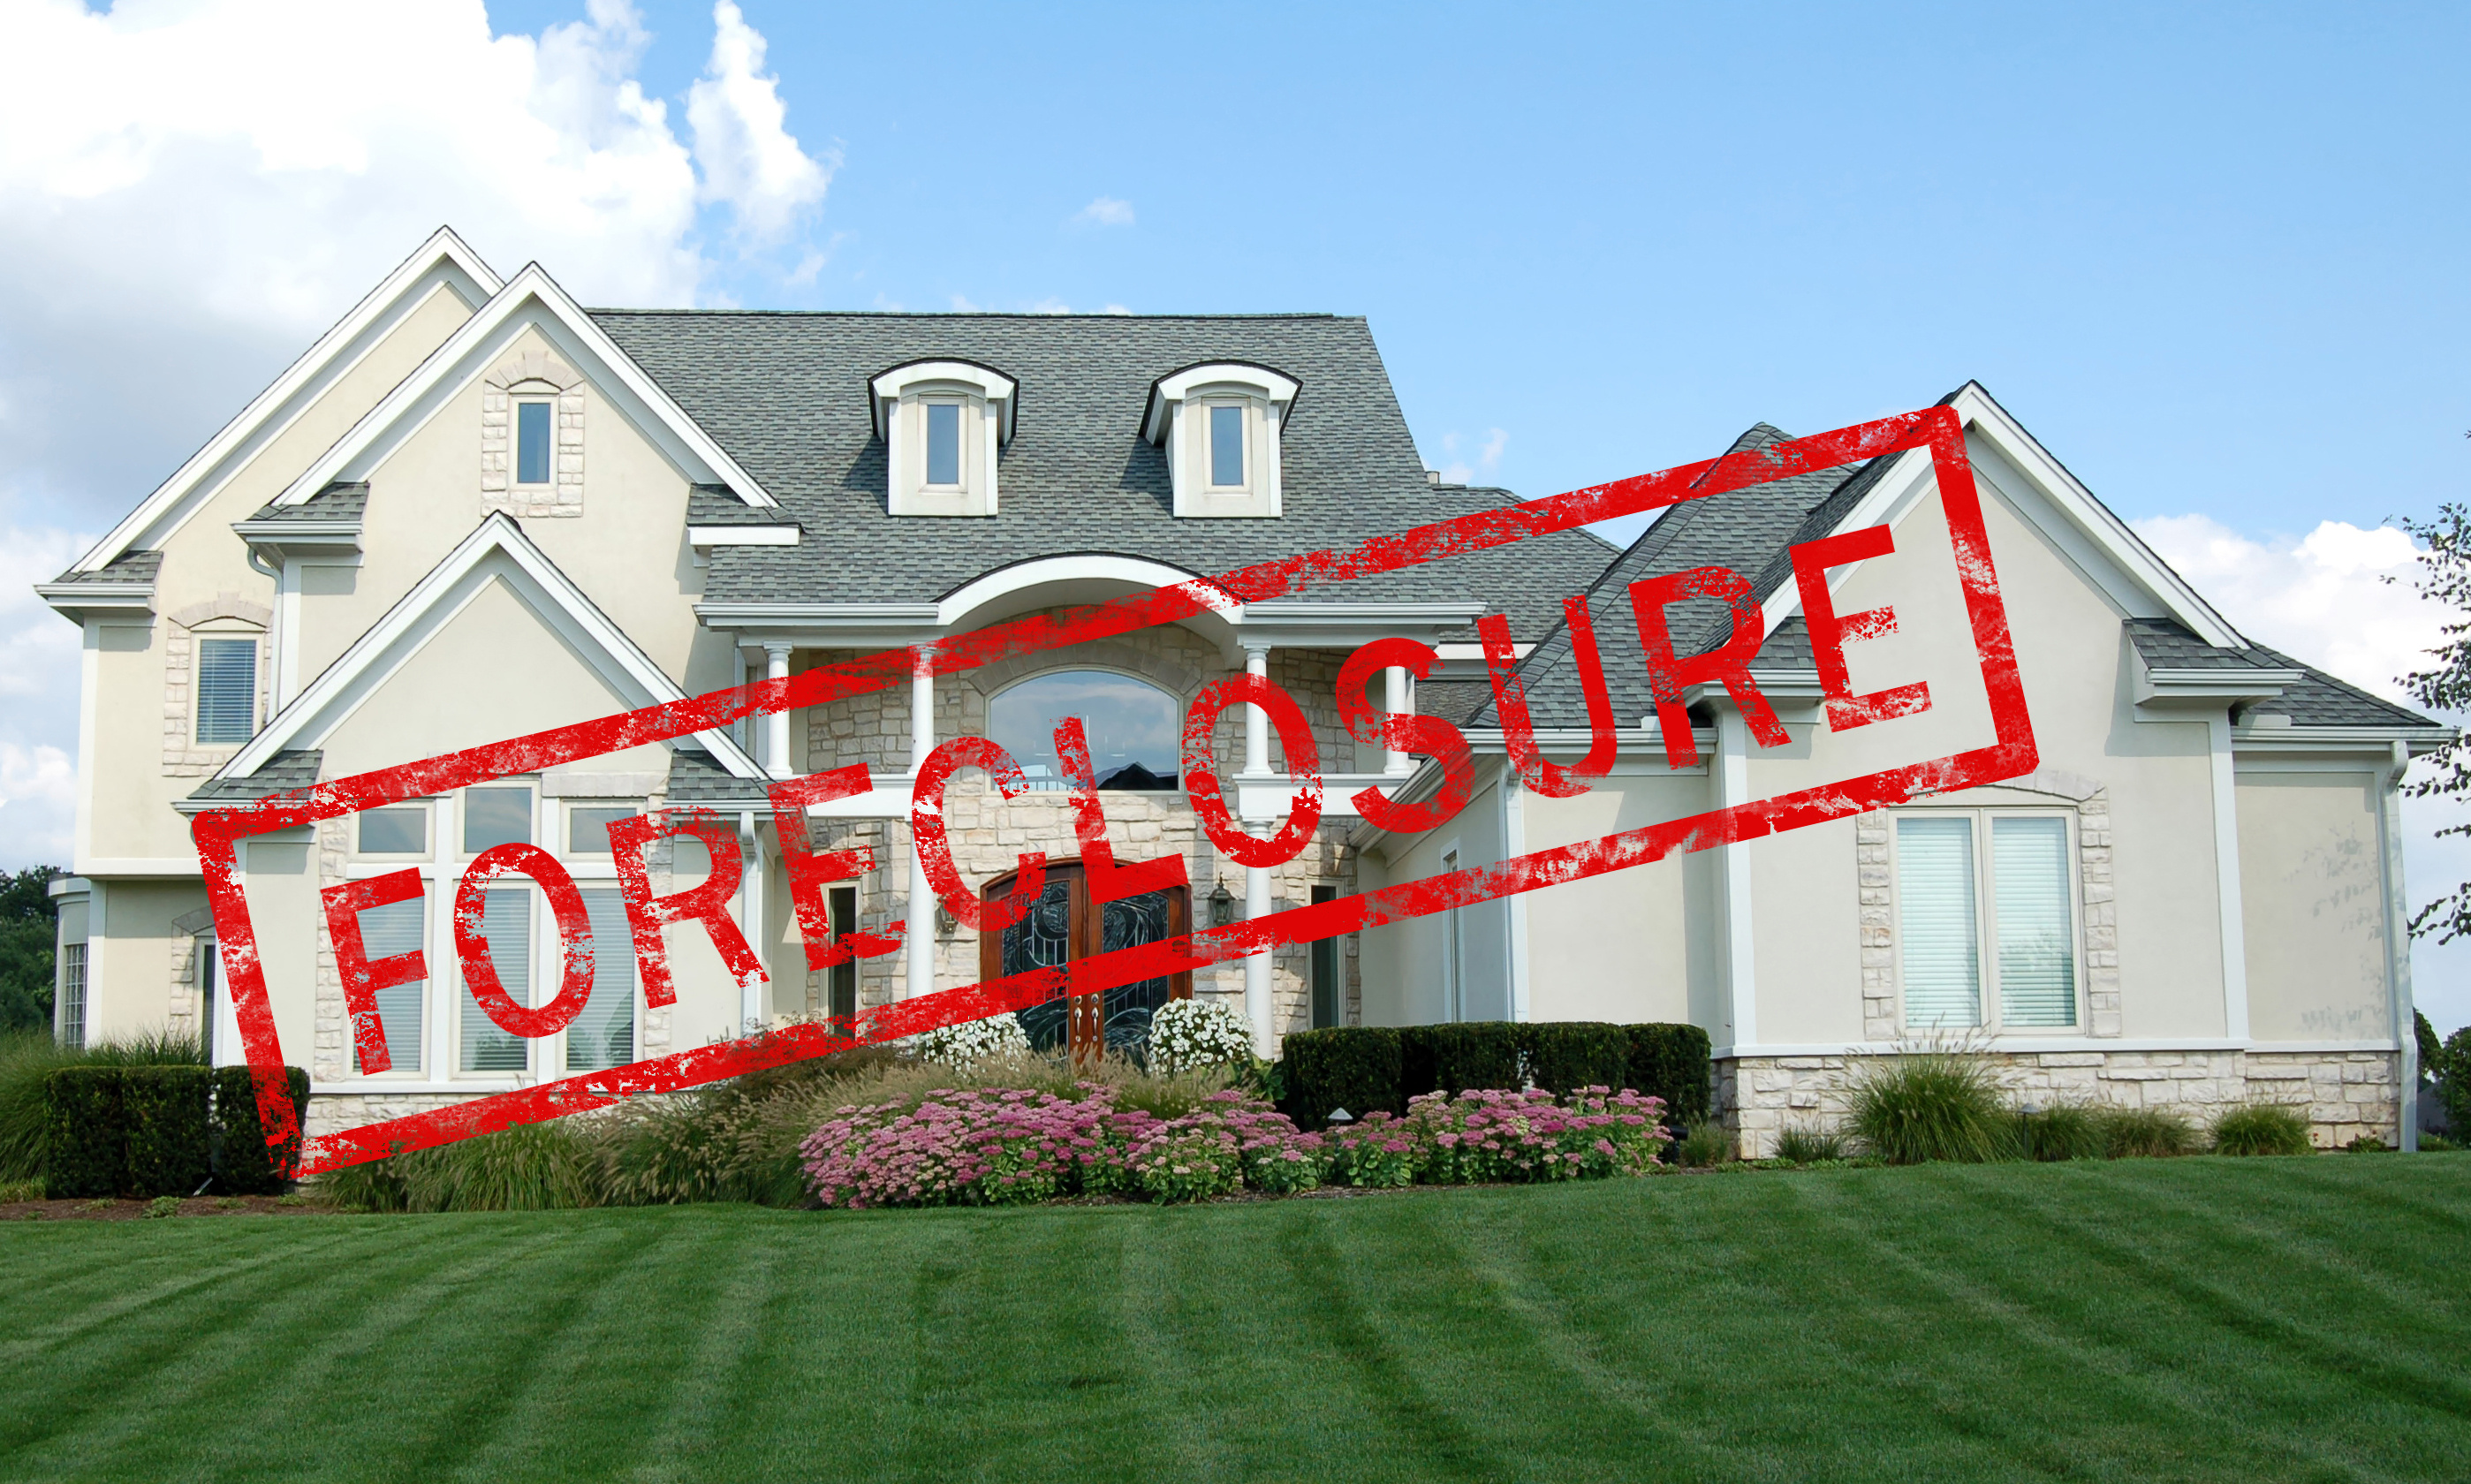 Call Phoenix Valuations, LLC when you need appraisals regarding Maricopa foreclosures